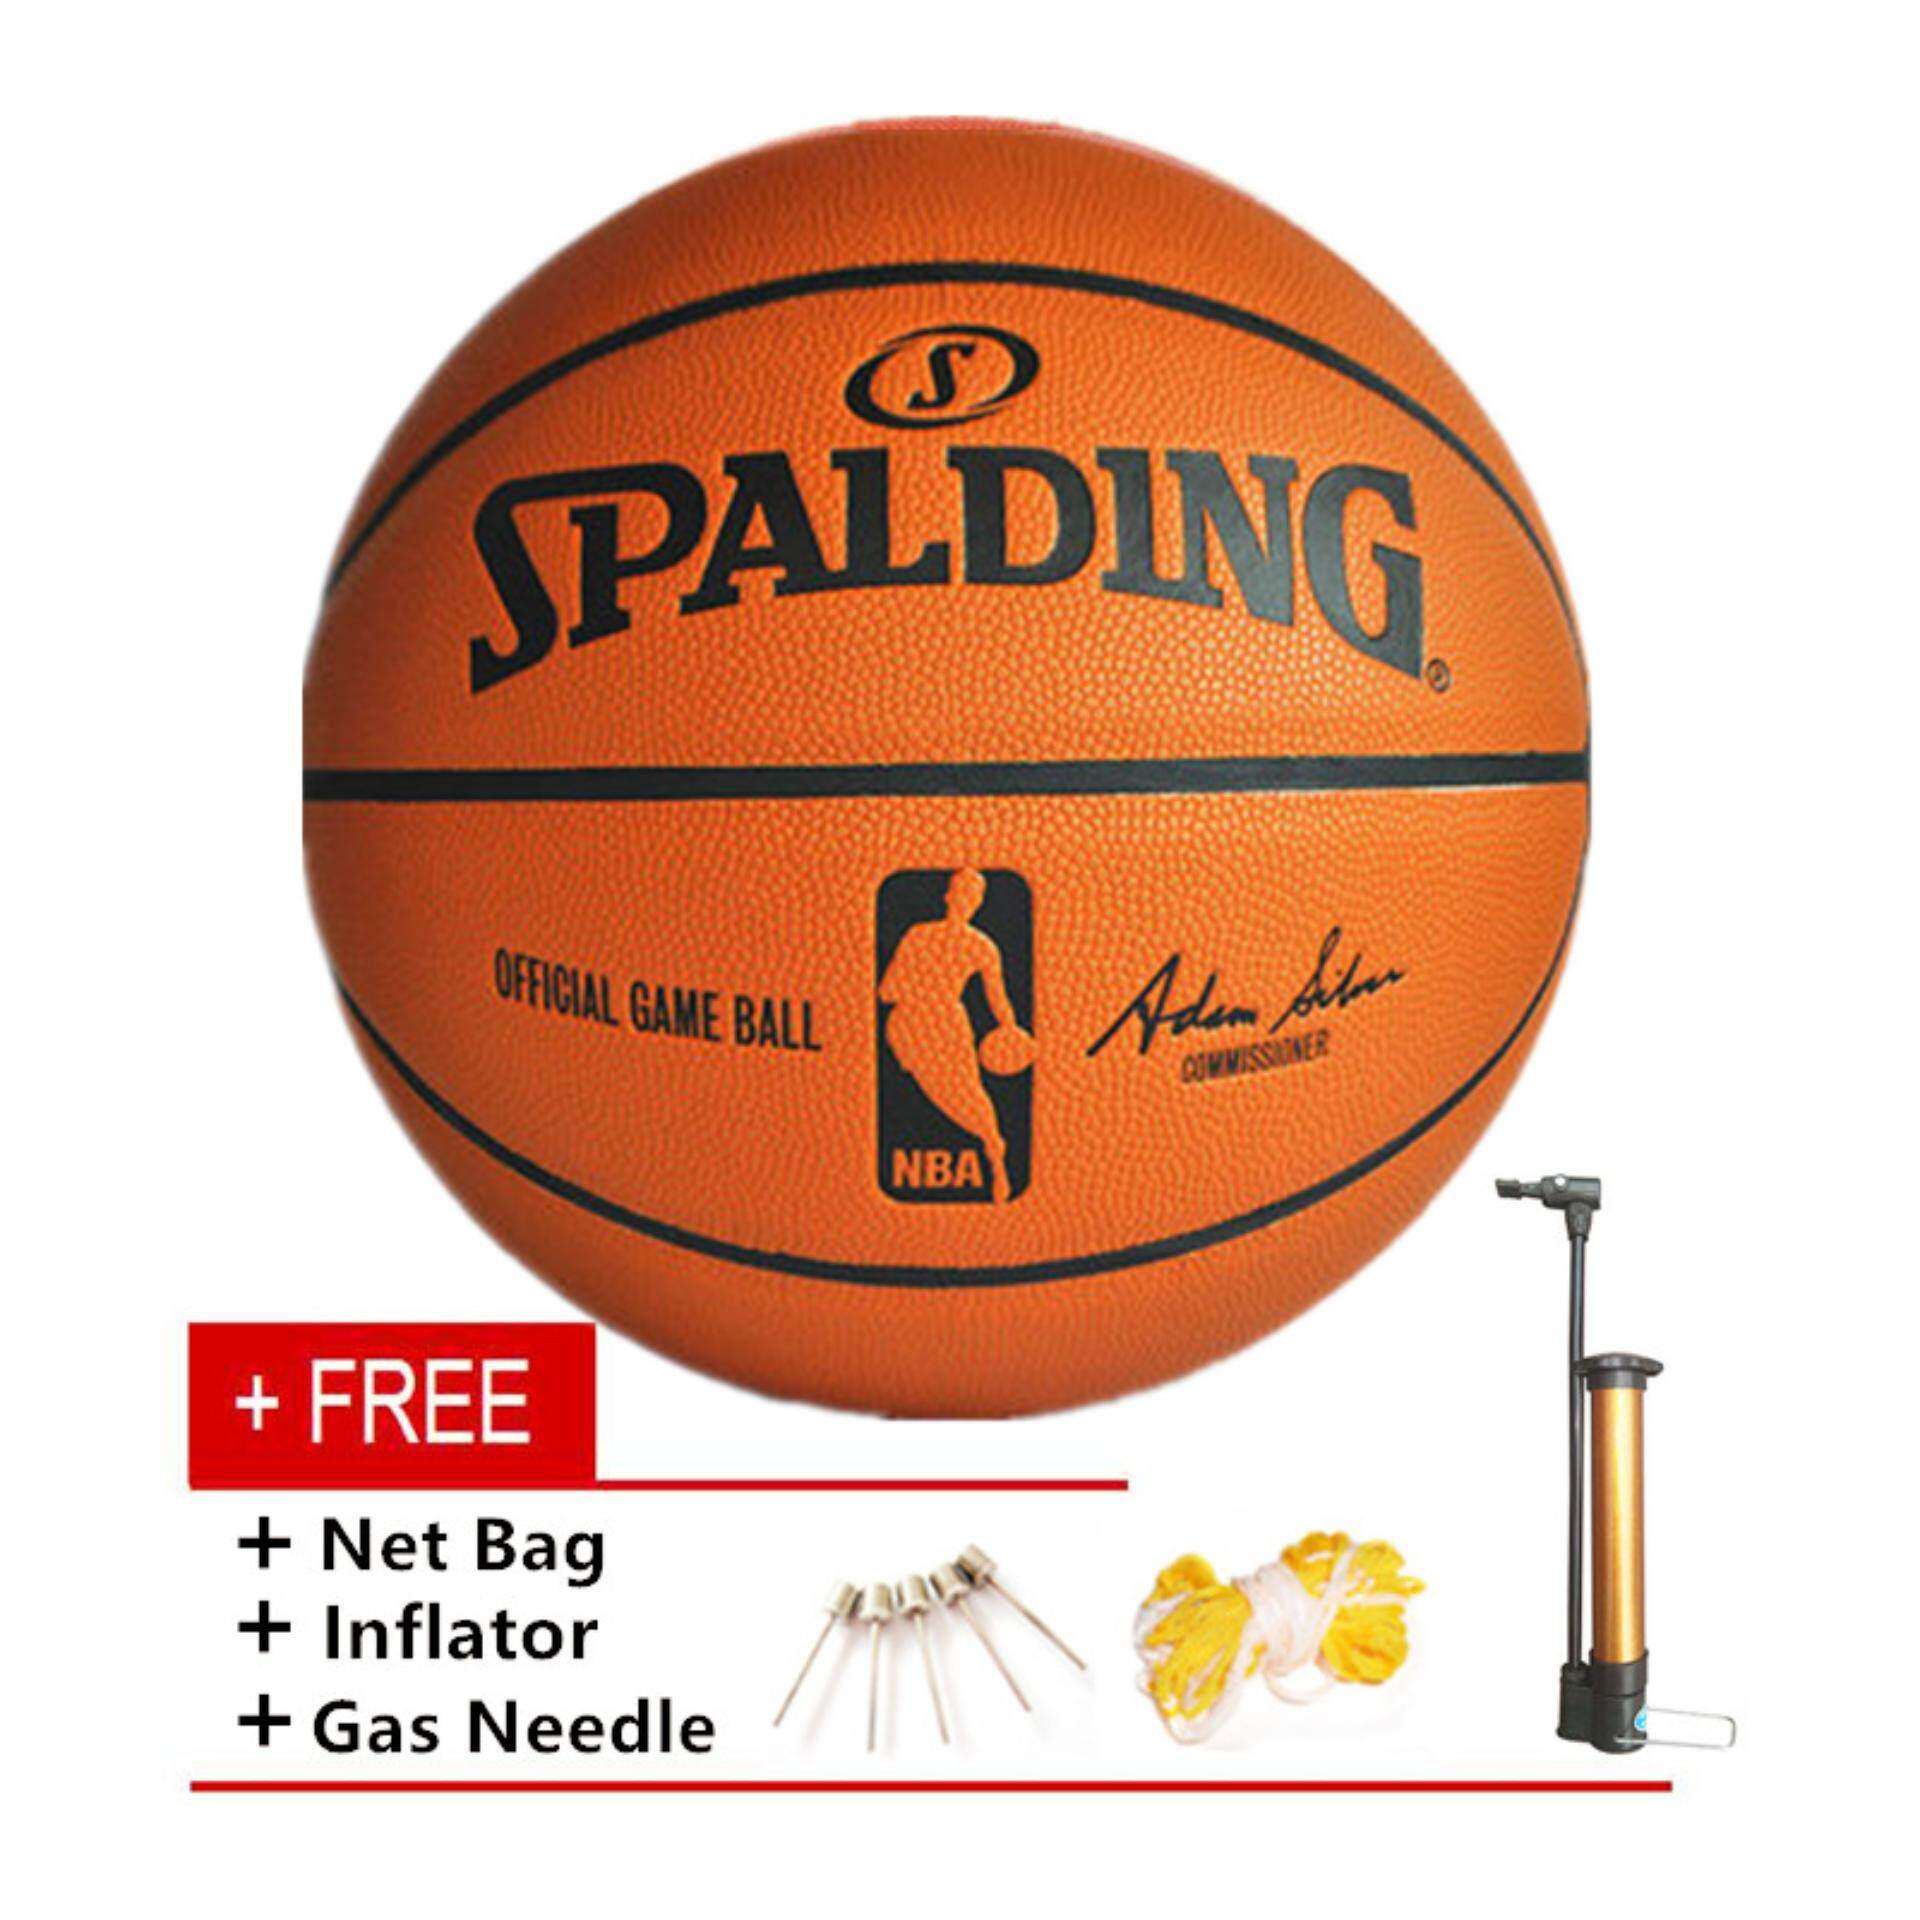 Basketball Ball Spalding Basketball Professional Size 7 Indoor Outdoor Pu Leather Training Match Basketball Intl